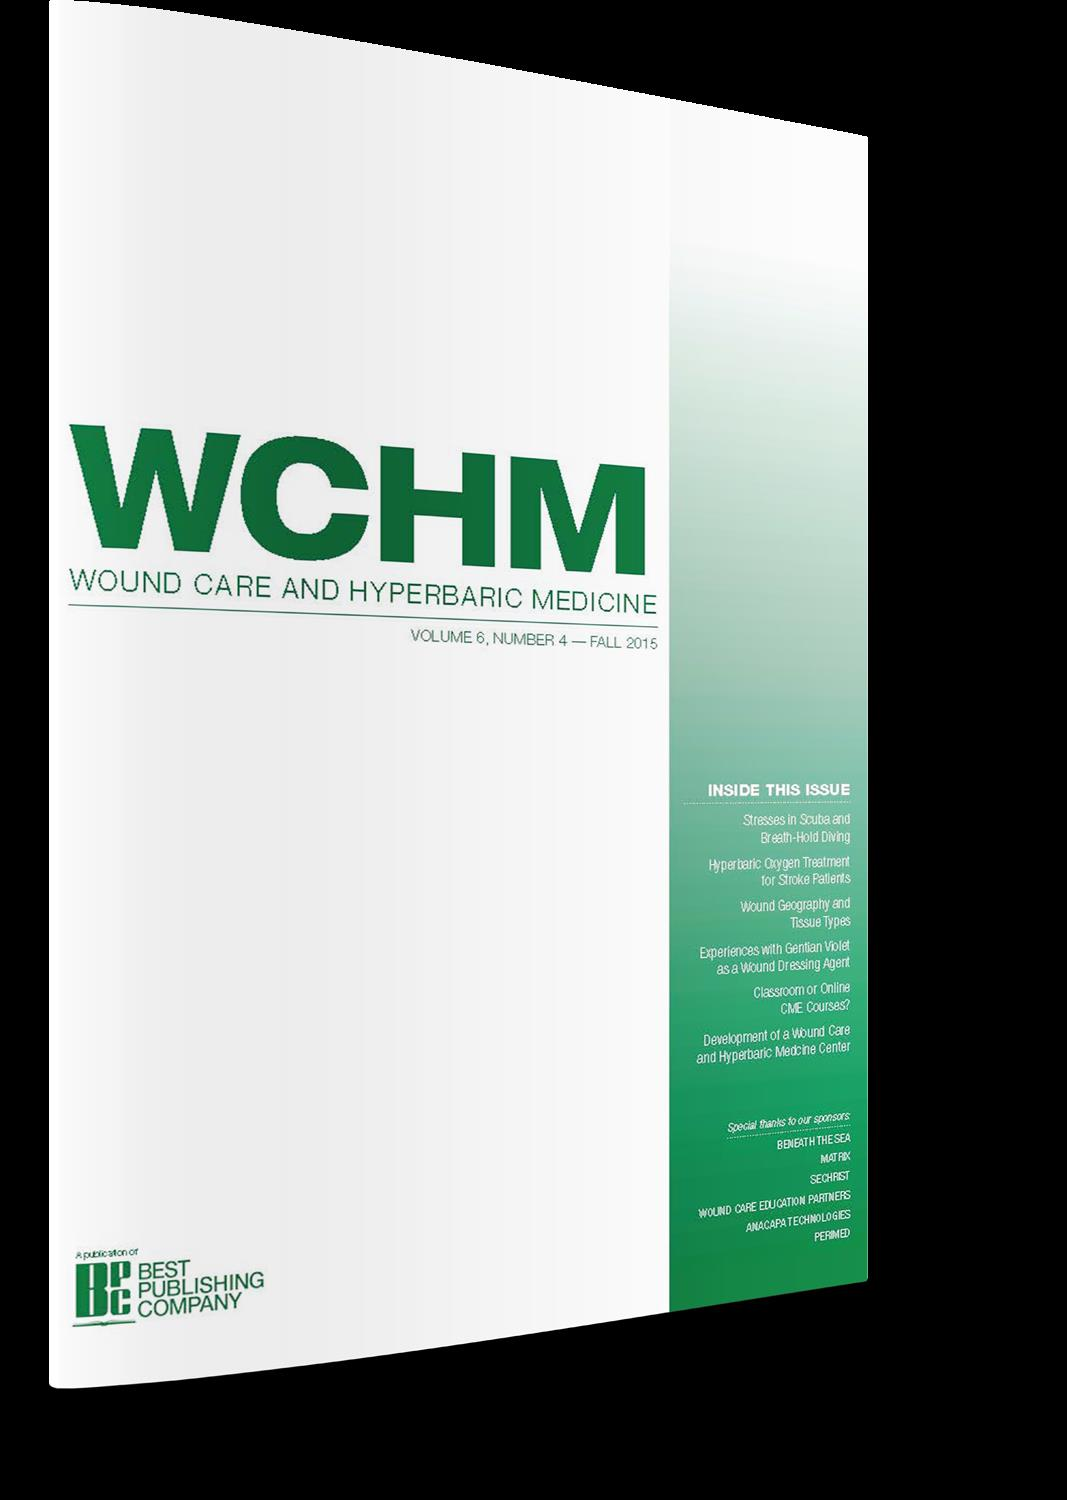 Wound Care and Hyperbaric Medicine Magazine Vol 6 Issue 3